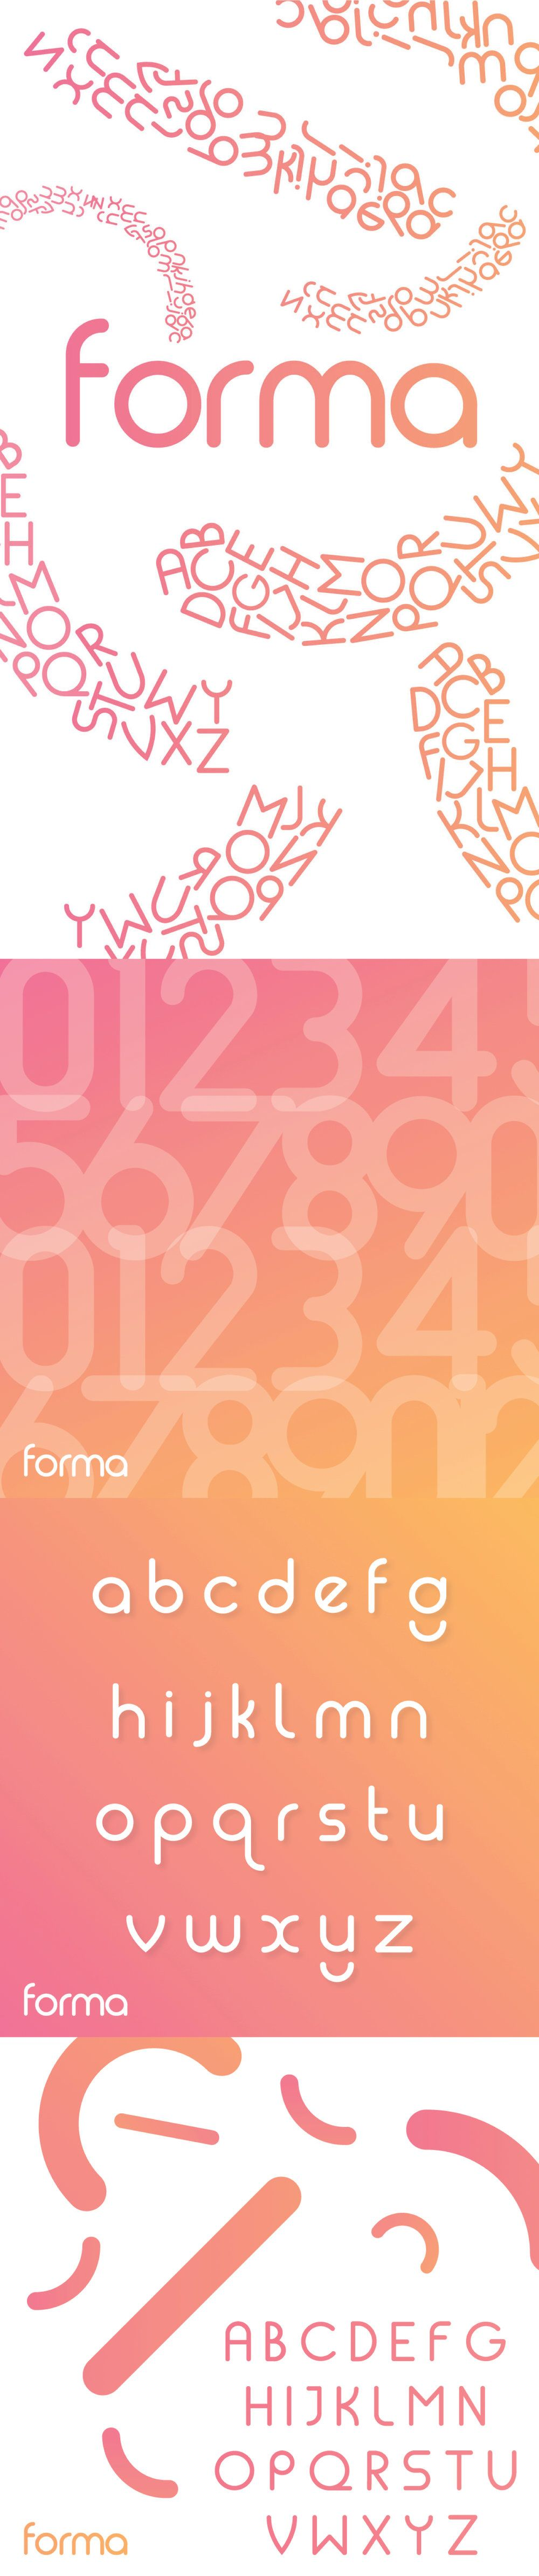 FORMA FREE FONT — Pixel Surplus Resources For